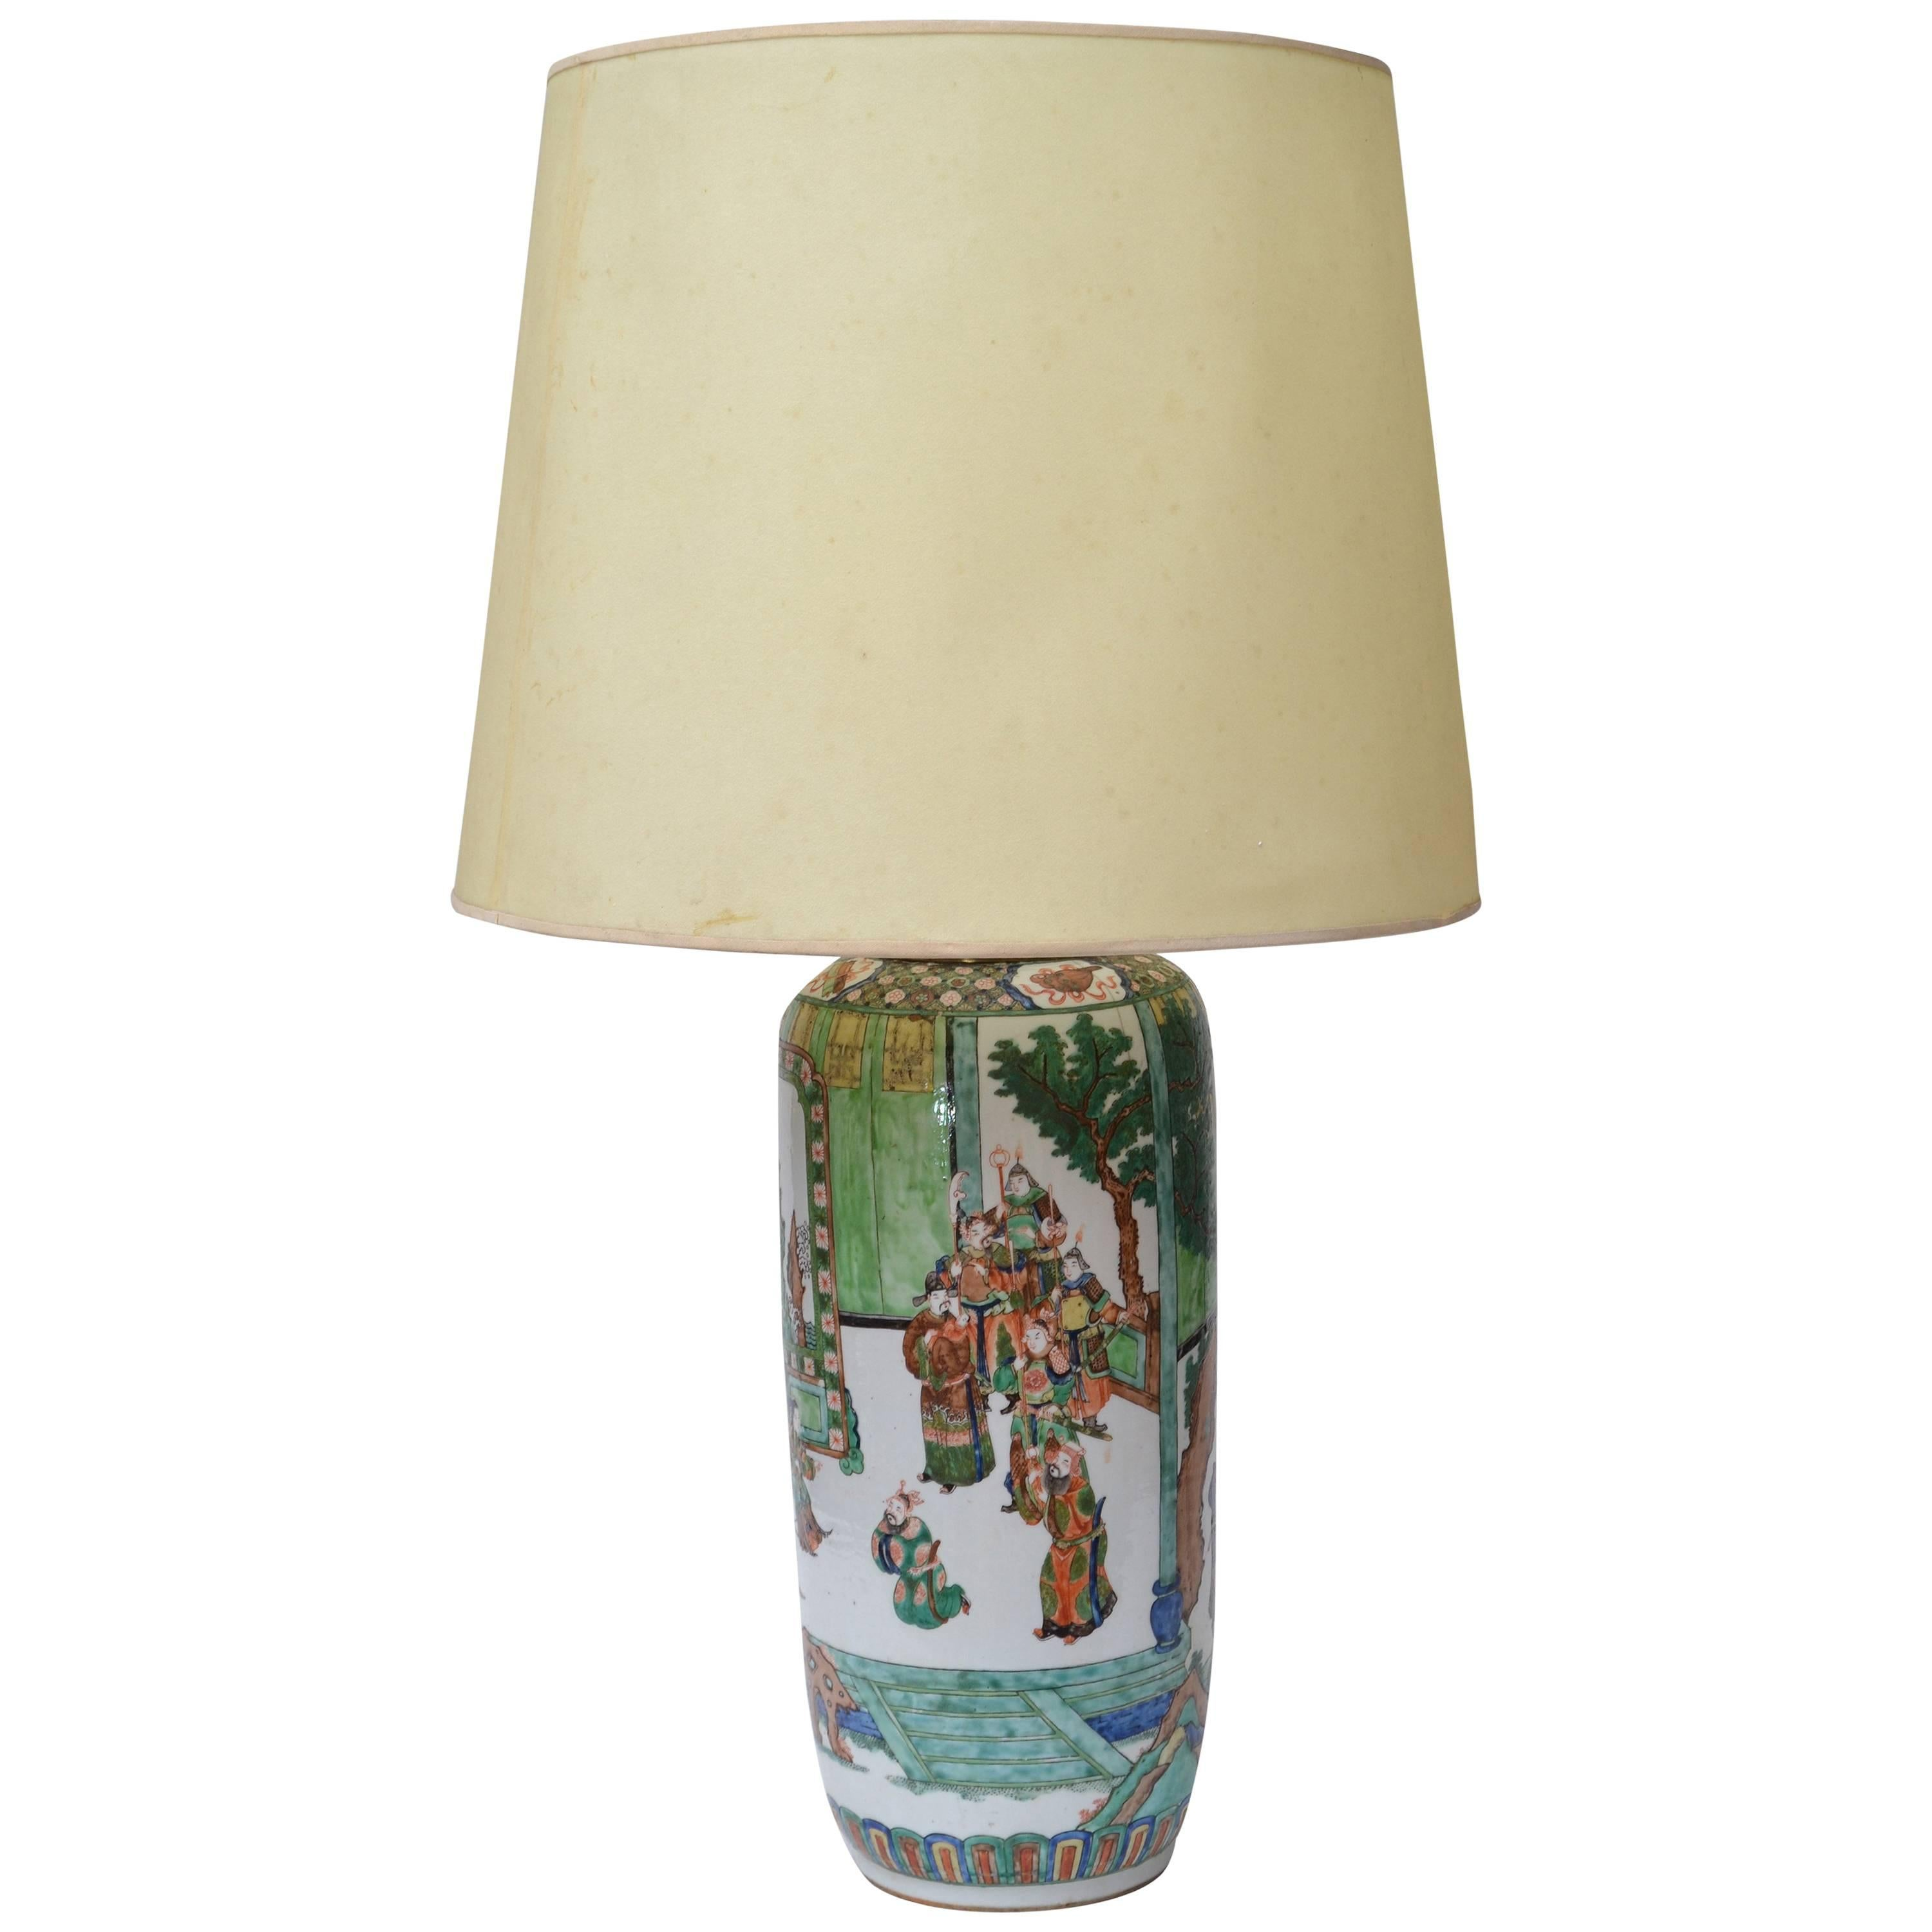 Signed Hand-Painted Chinese Porcelain Table Lamp with Original Shade